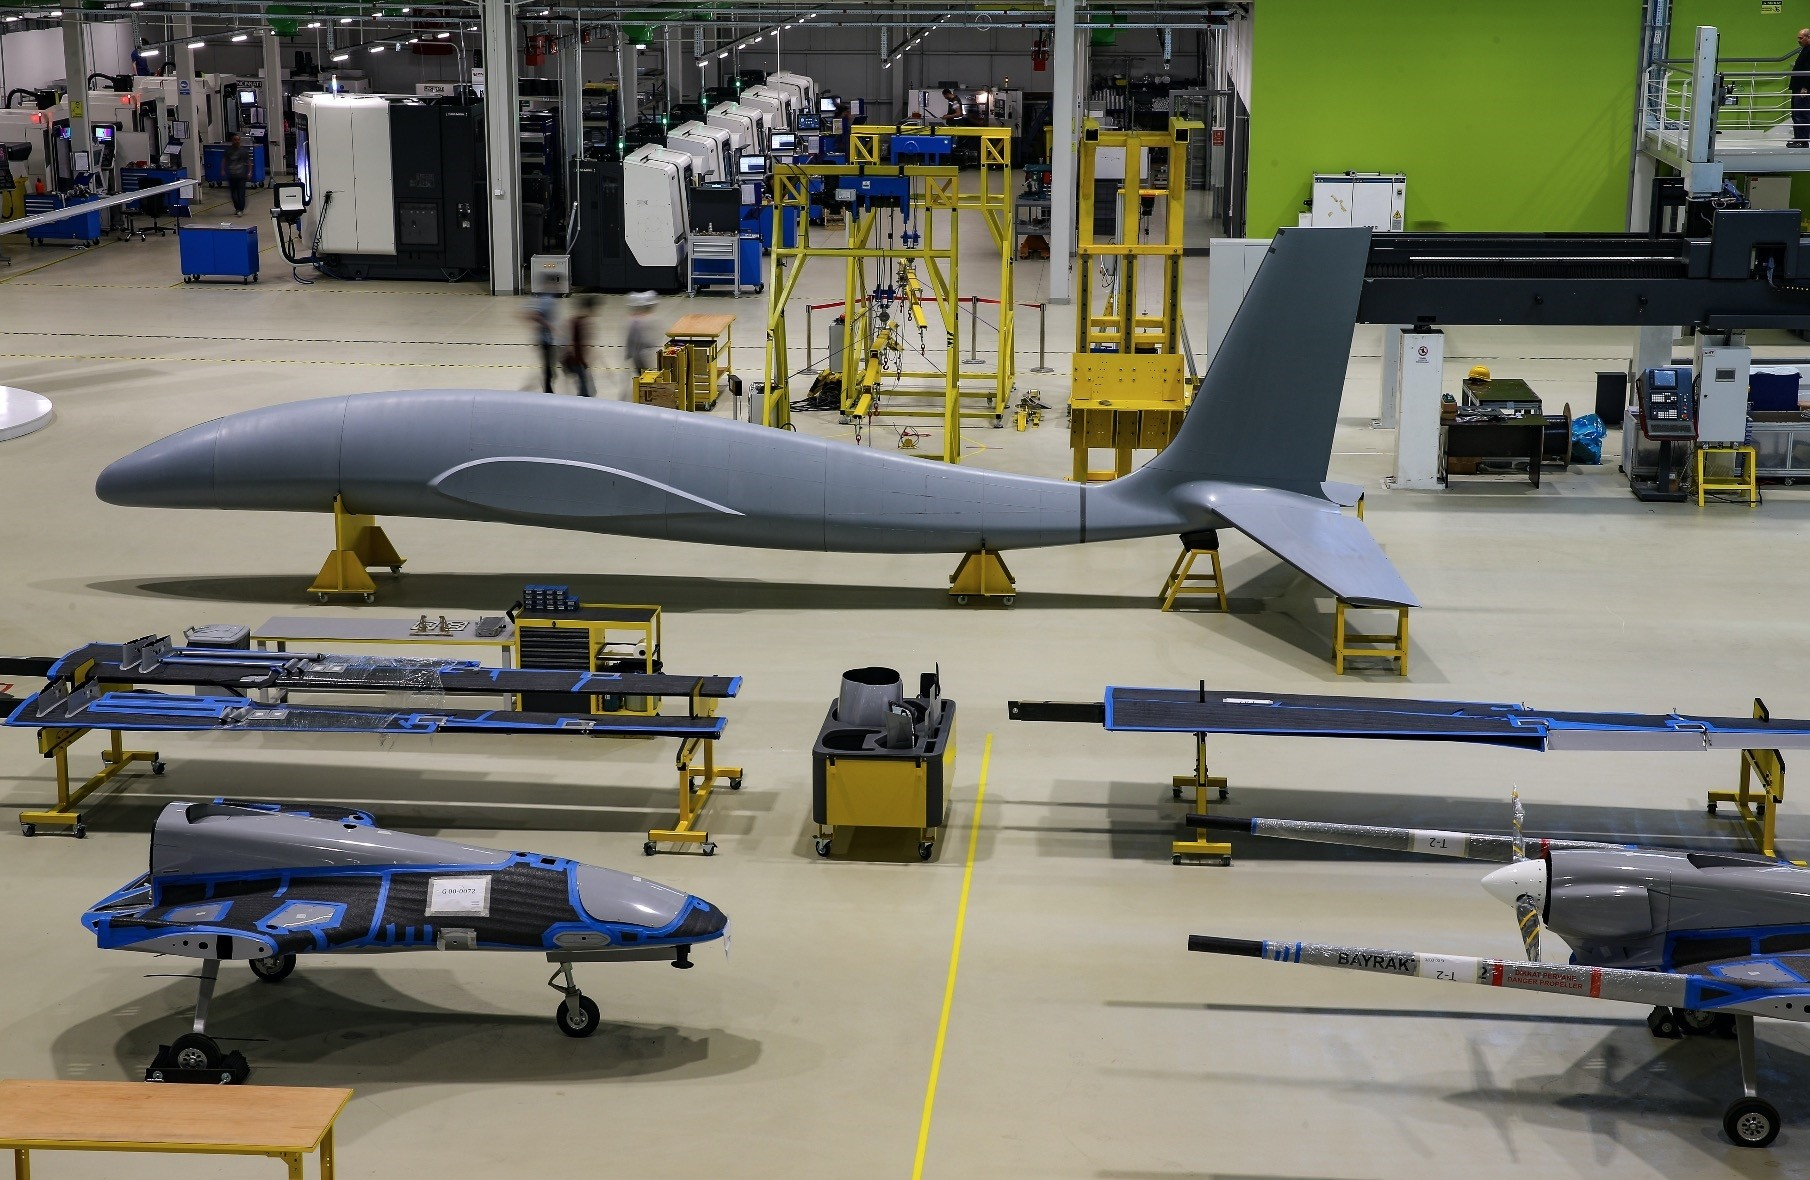 Baykar Makina is also involved in the production of Turkeyu2019s armed drones.